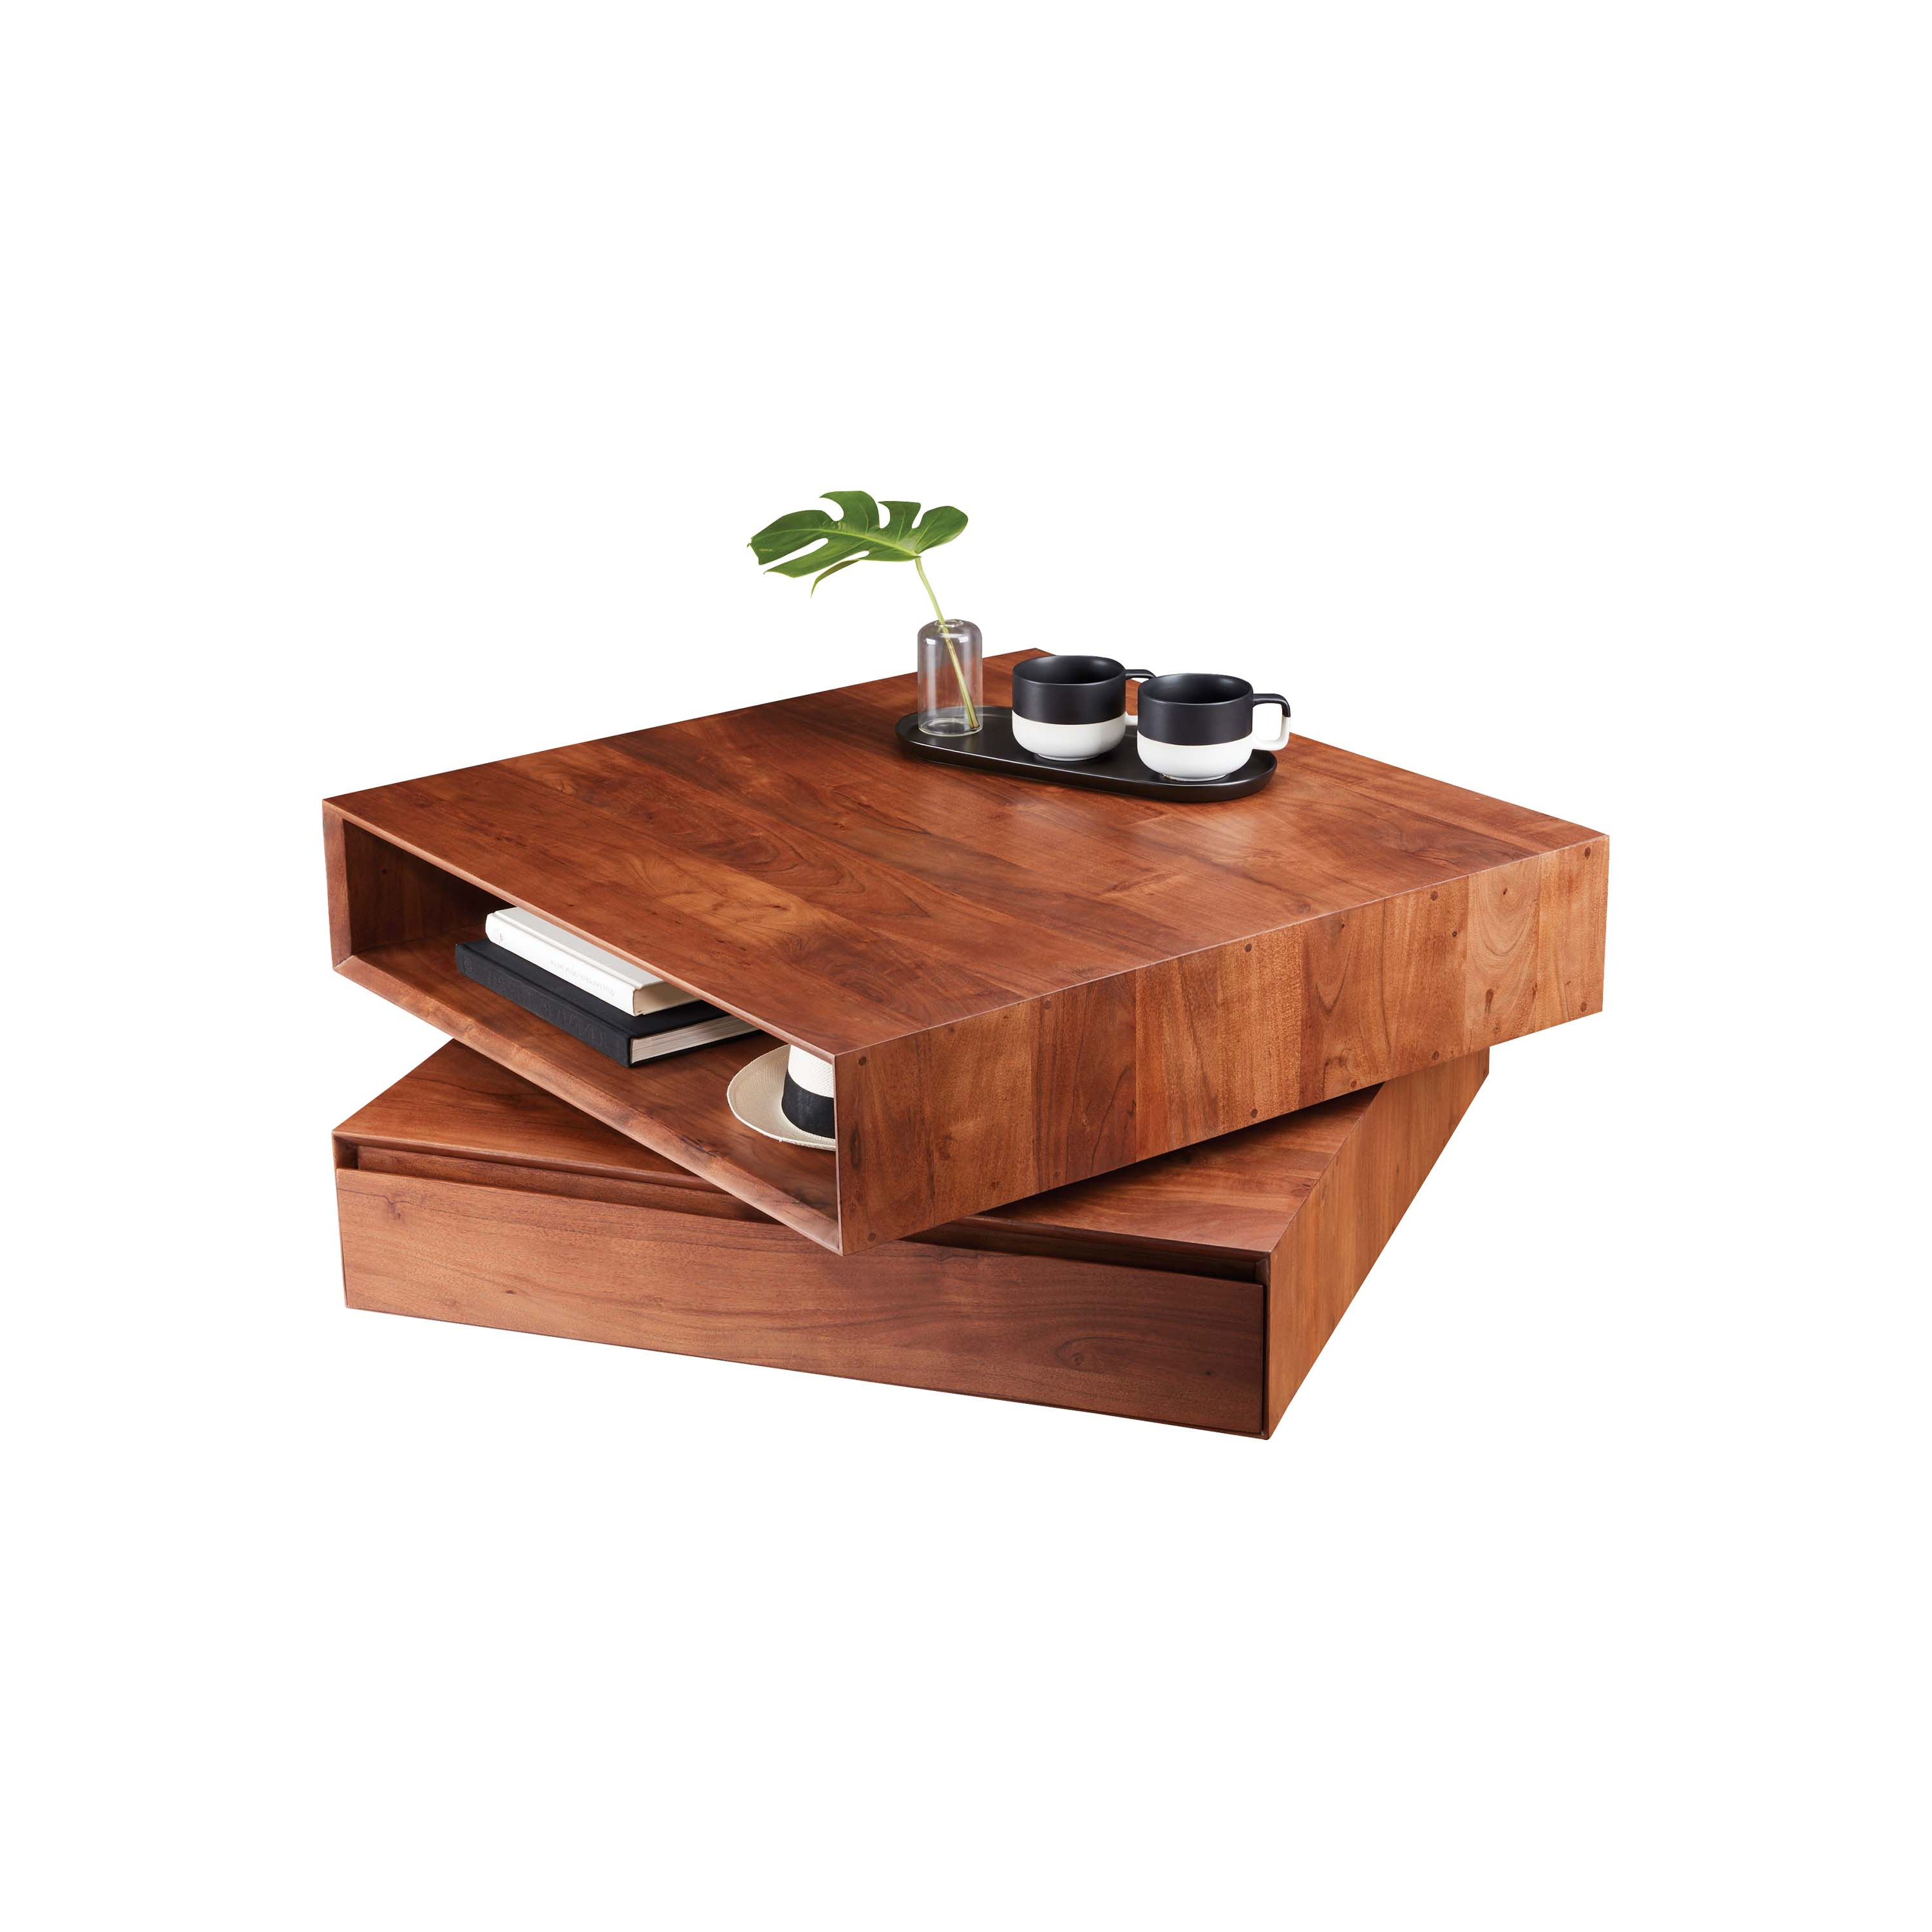 Trendy 6 Scene Stealing Coffee Tables We Love – Western Living Magazine For Spin Rotating Coffee Tables (View 18 of 20)